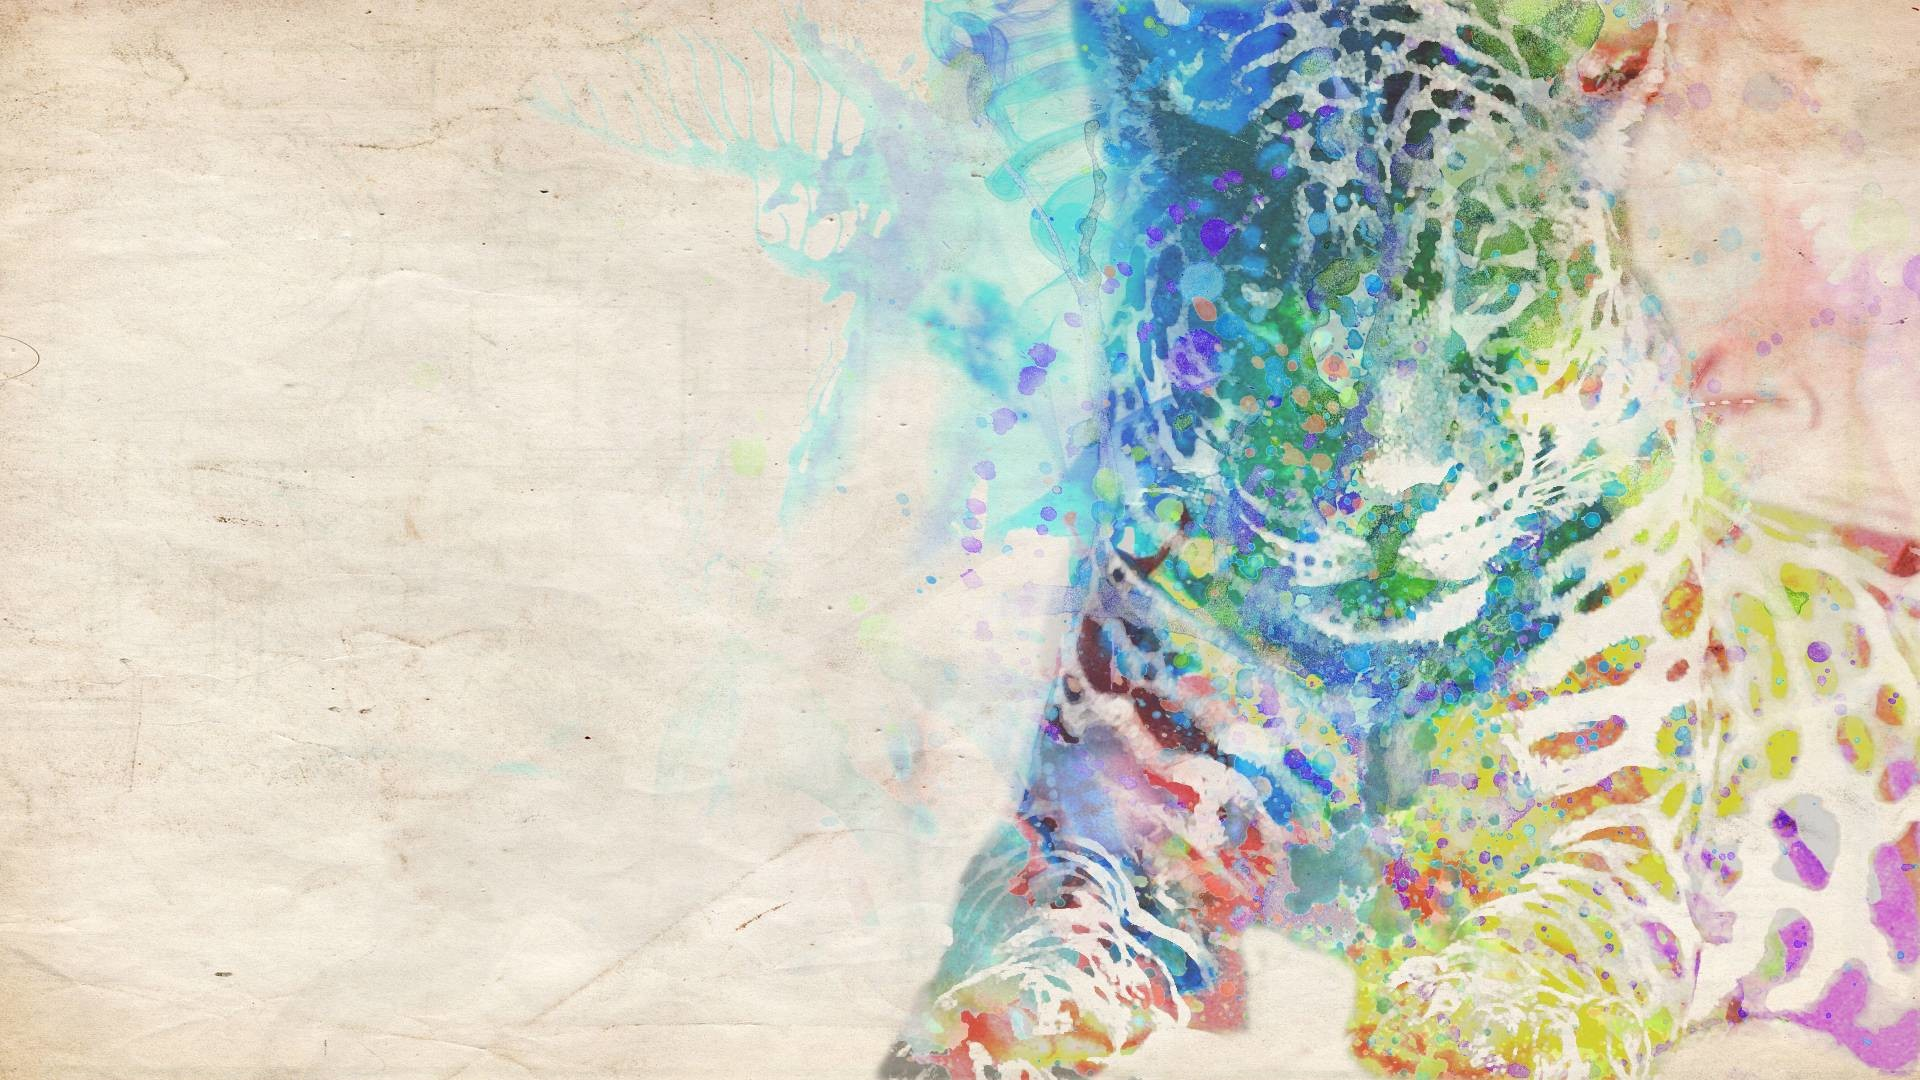 Download Wallpaper Harry Potter Watercolor - 764520-watercolor-backgrounds-1920x1080-pc  Graphic_84616.jpg